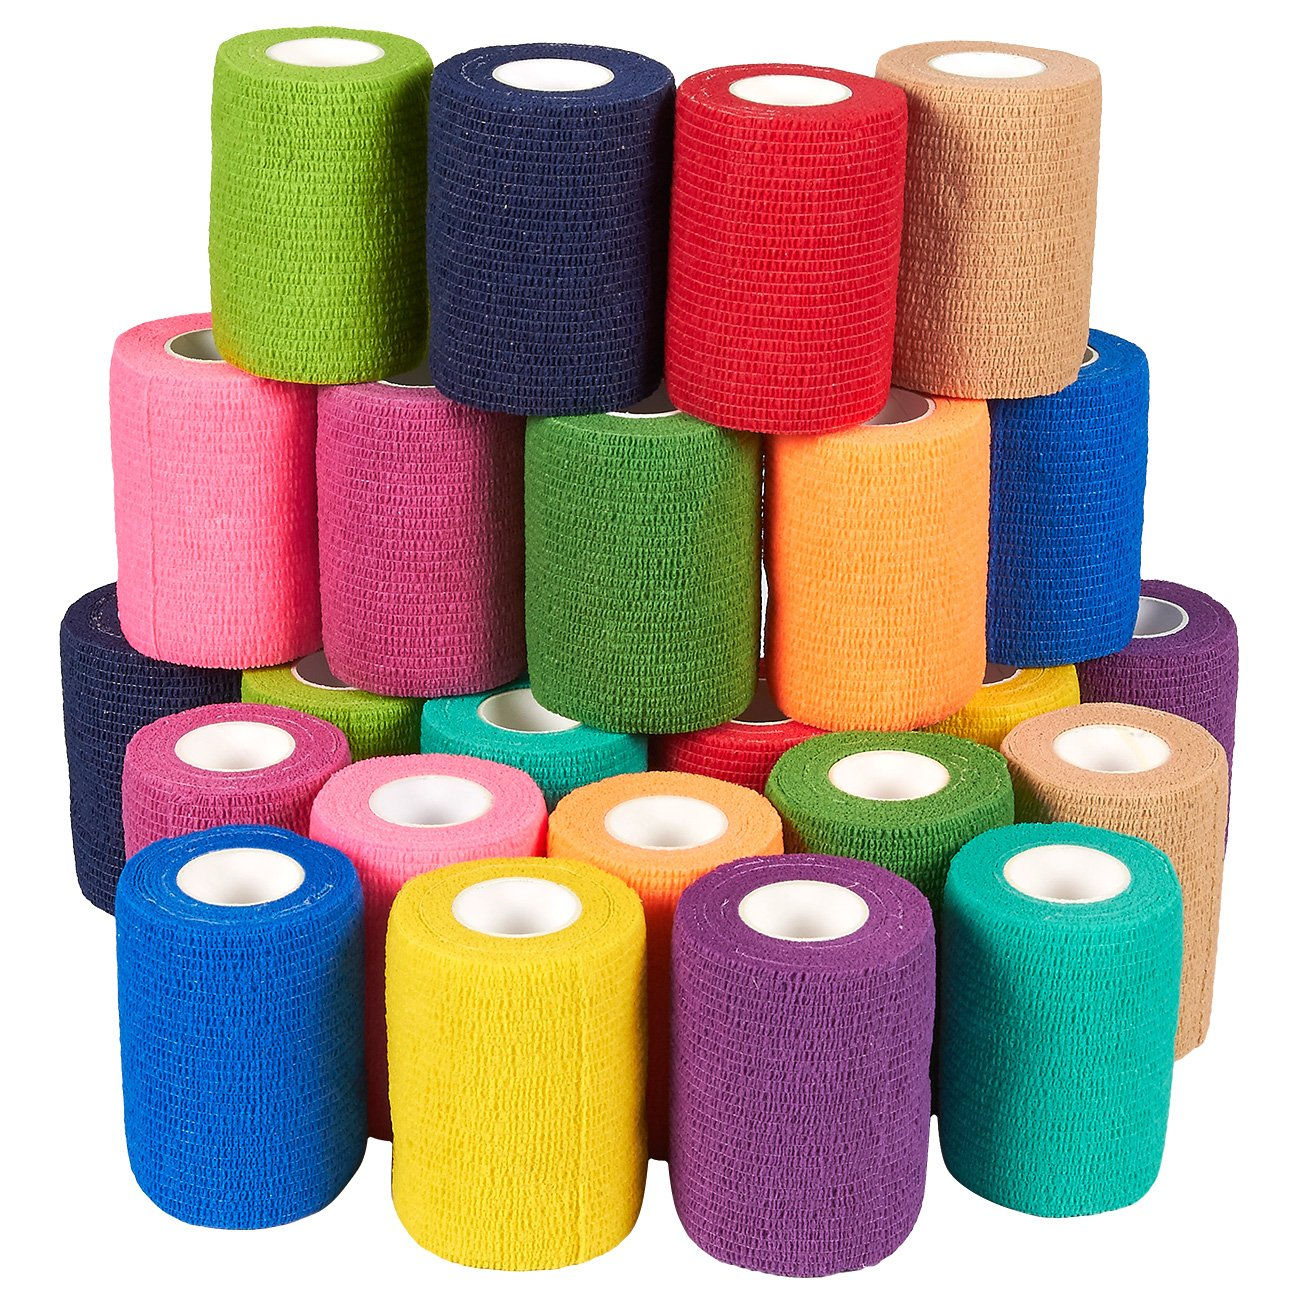 Juvale Self Adherent Wrap - 24 Pack of Cohesive Bandage Medical Vet Tape for First Aid, Sports, Wrist, Ankle in 12 Colors with 2 Rolls Each, 3 Inches x 5 Yards by Juvale